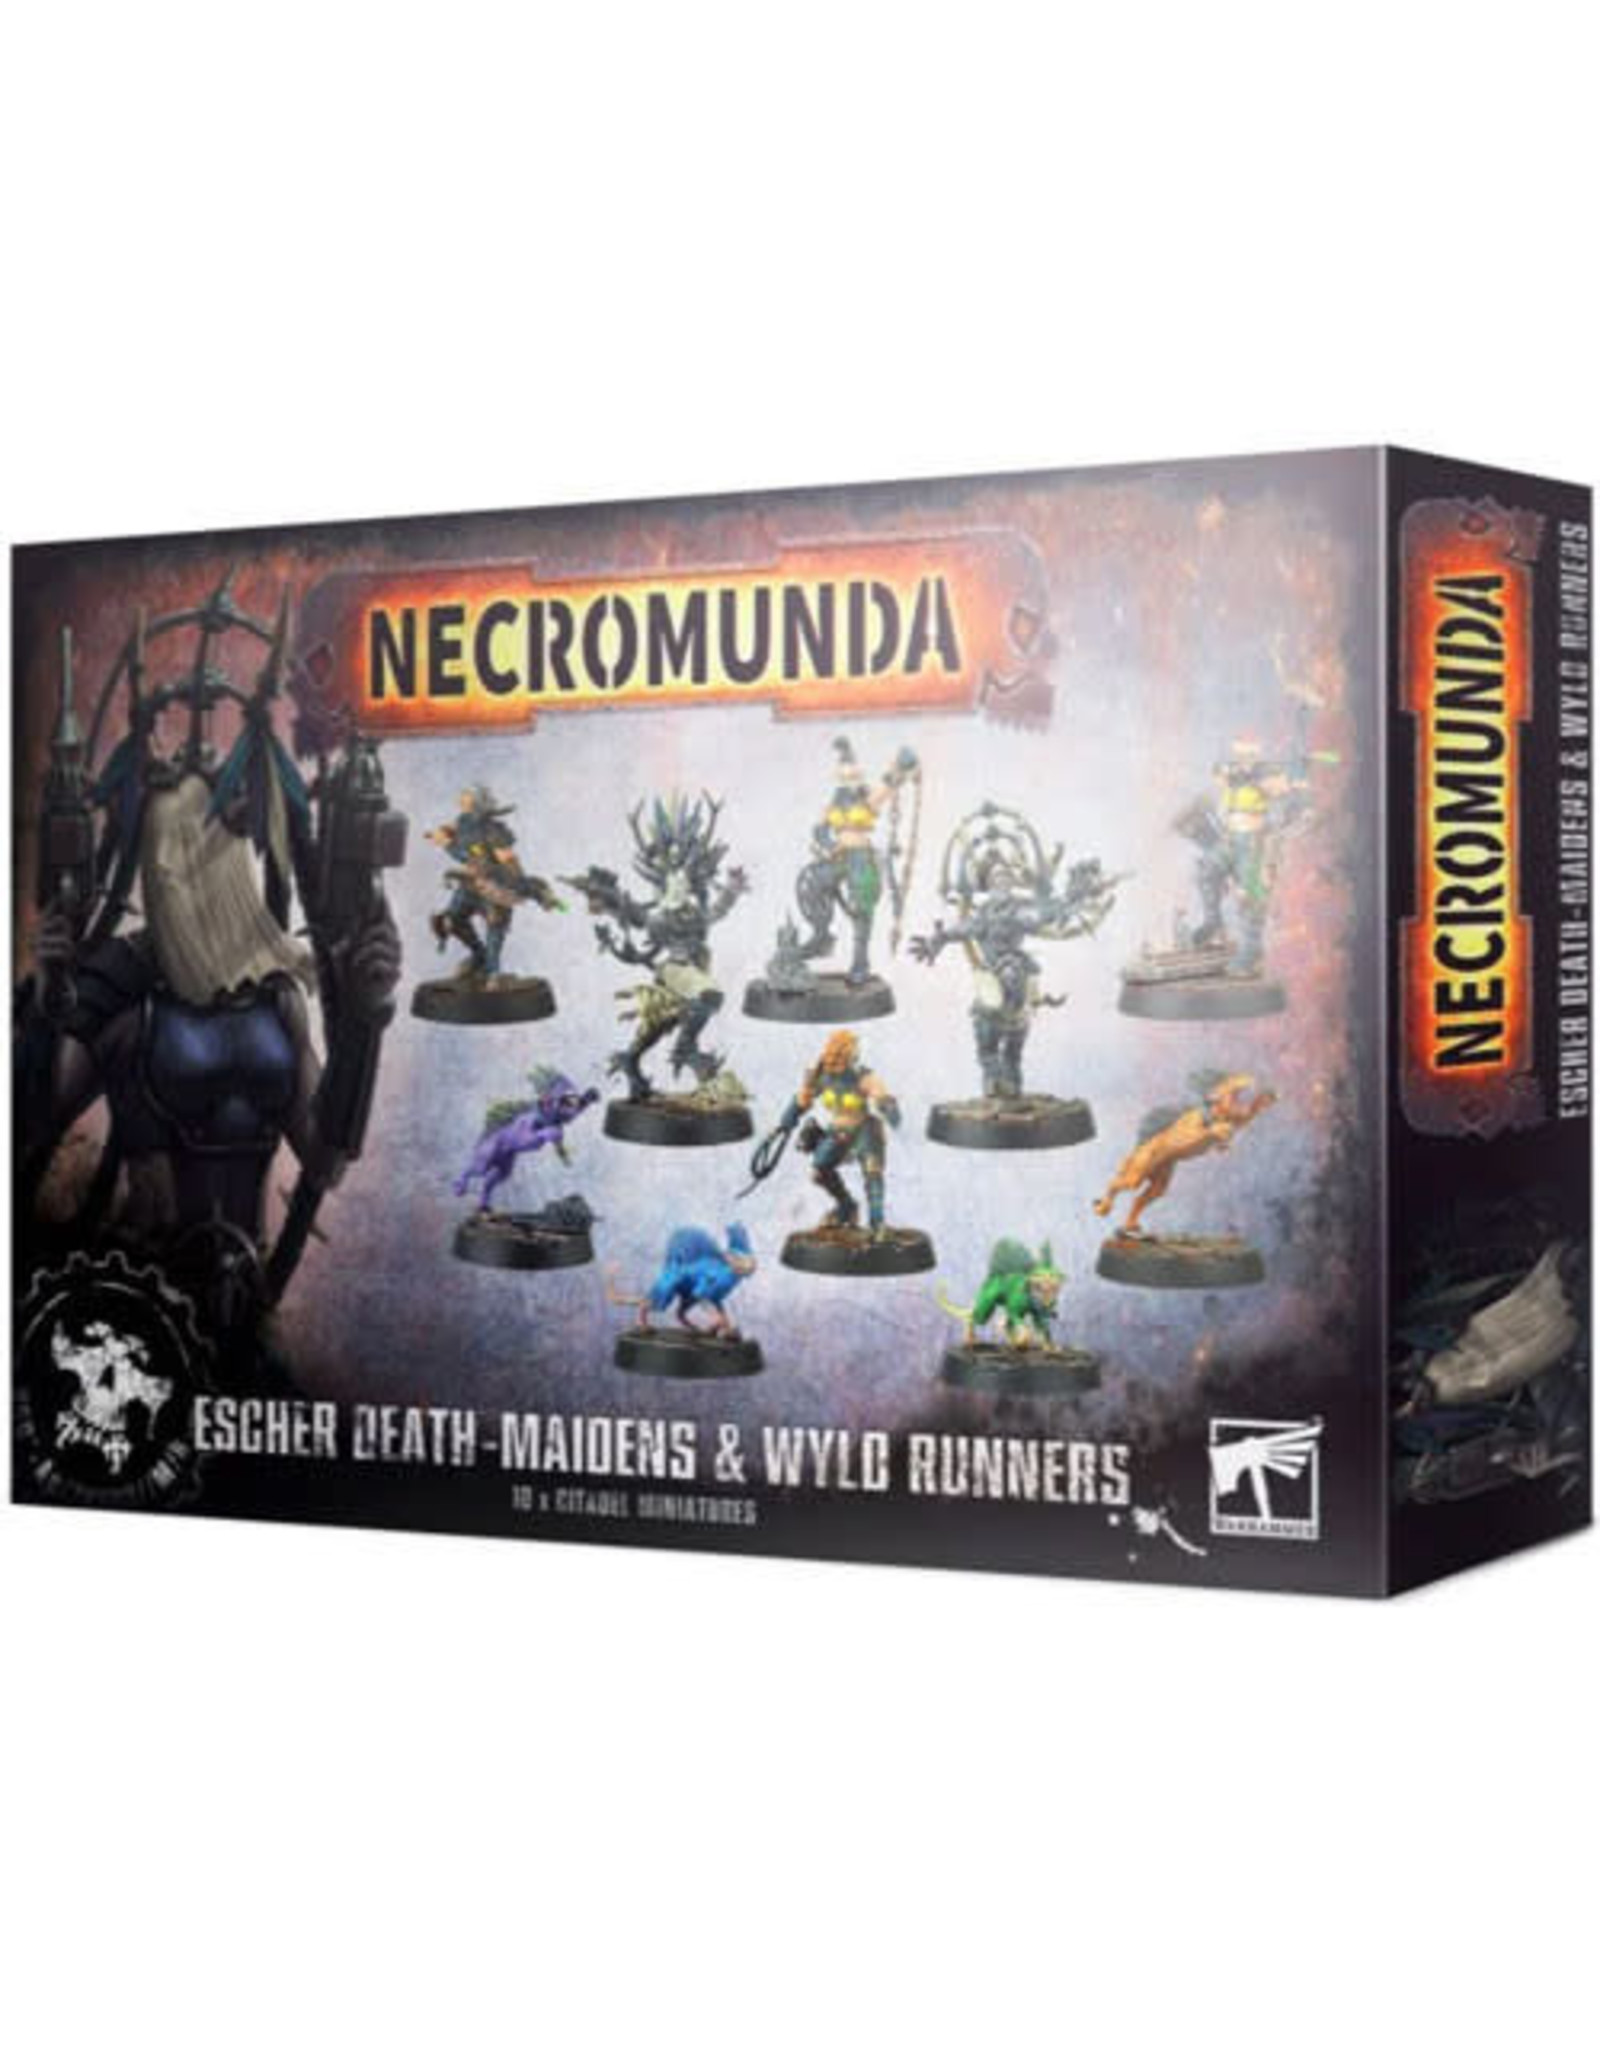 Games Workshop Necromunda Escher Death Maidens and Wyld Runners